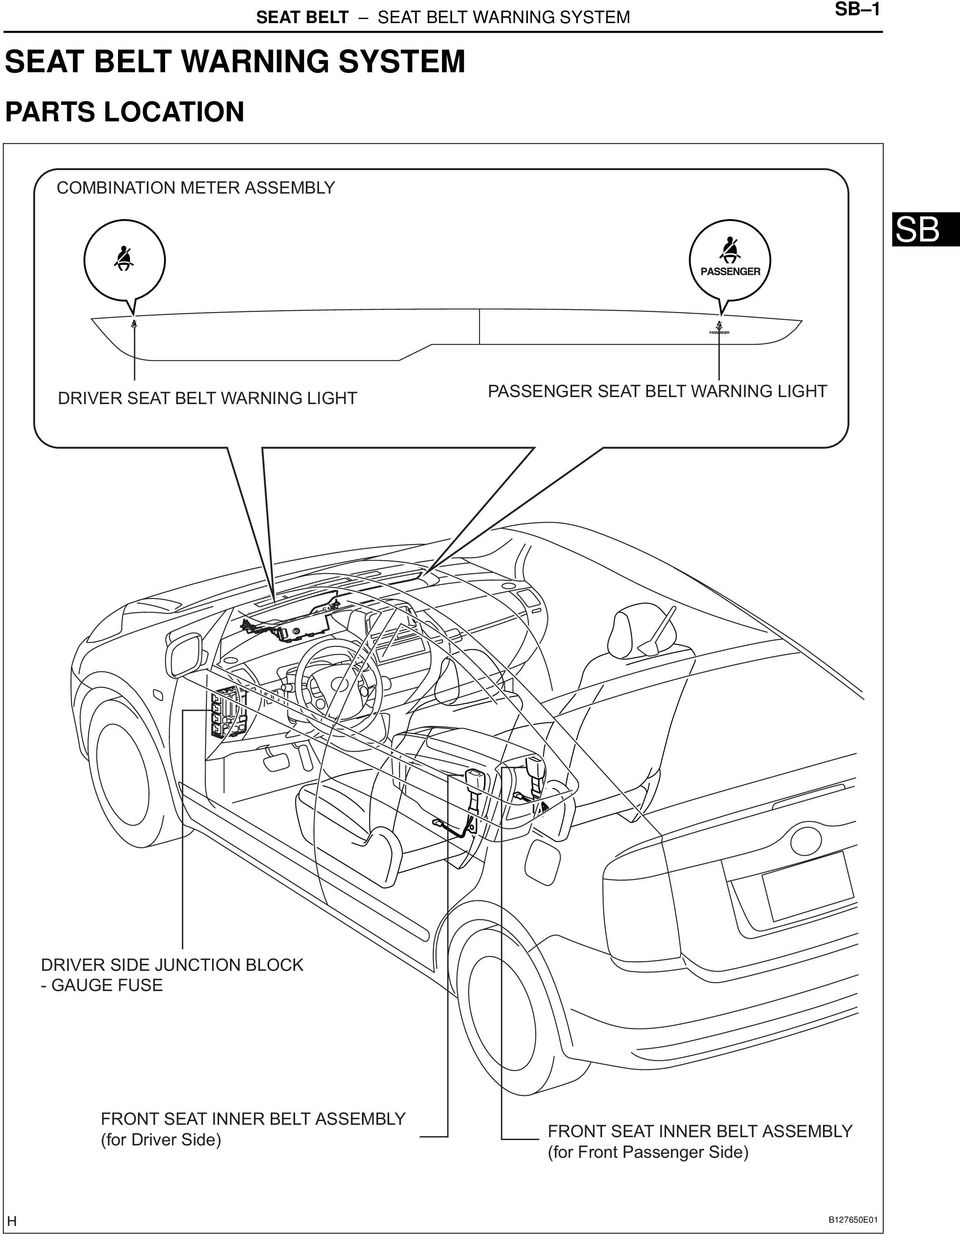 Toyota RAV4 Service Manual: Front seat inner belt assembly